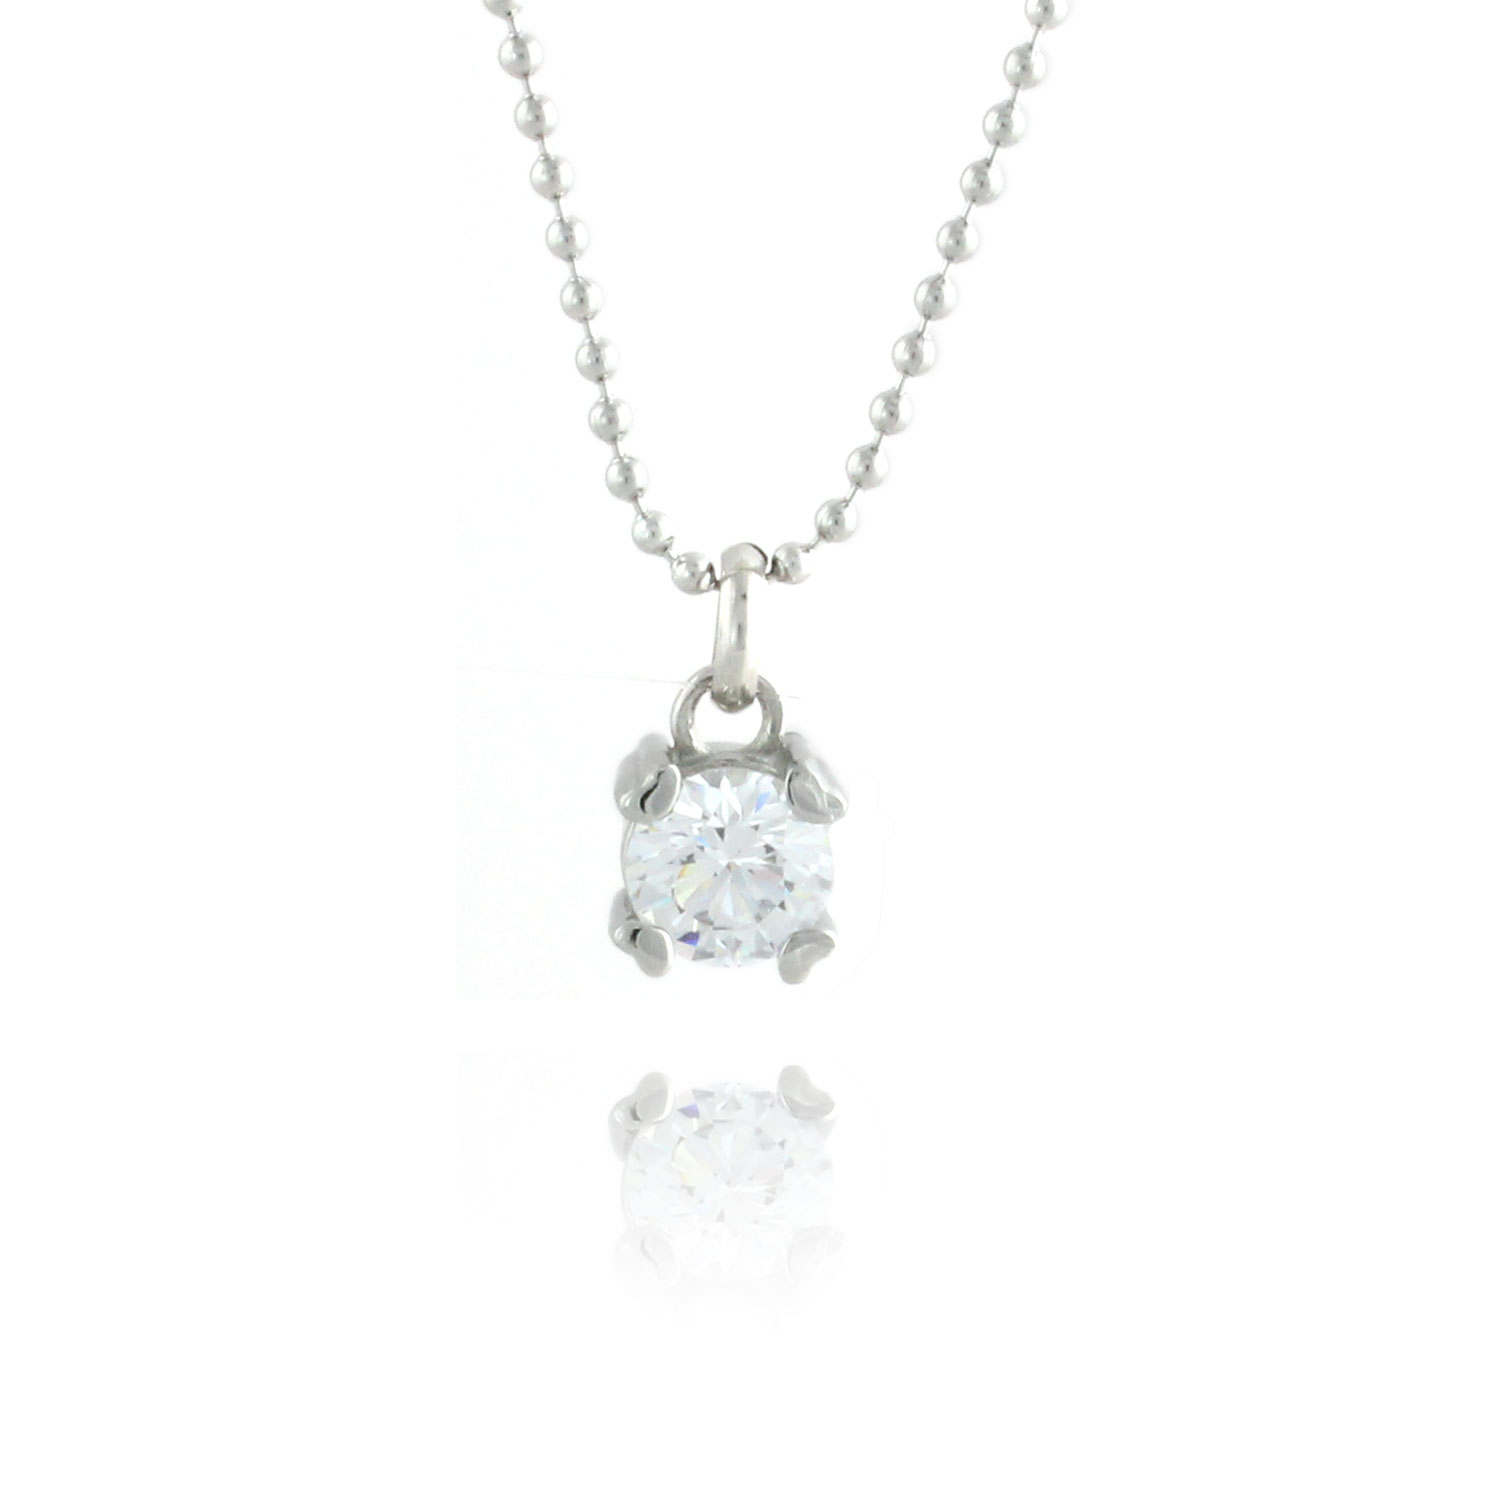 Tiny Hearts 316L Stainless Steel & White Cubic Zirconia Simple Pendant Necklace - 18 inch chain